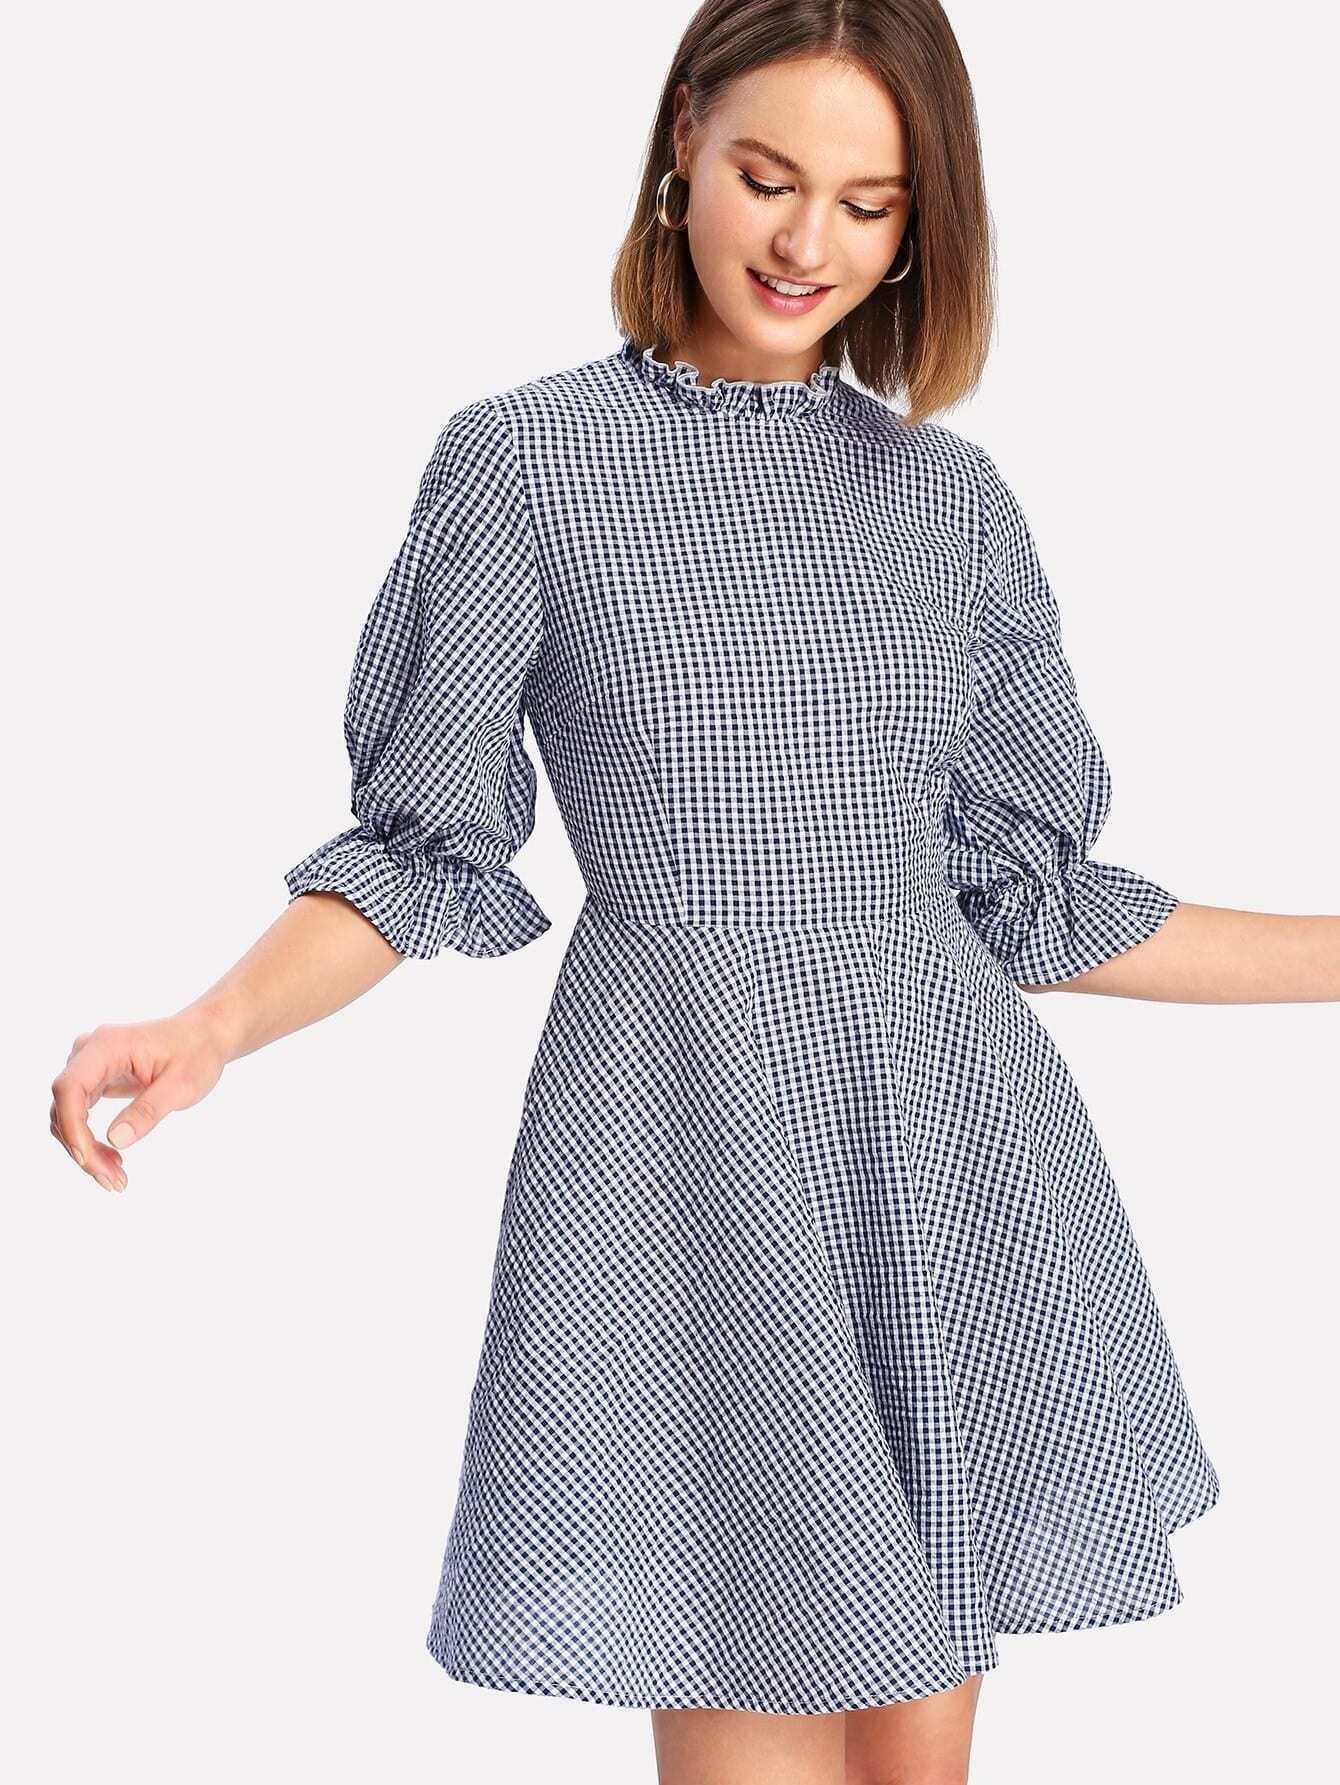 Ruffle Neck And Cuff Gingham Dress open shoulder ruffle cuff gingham blouse